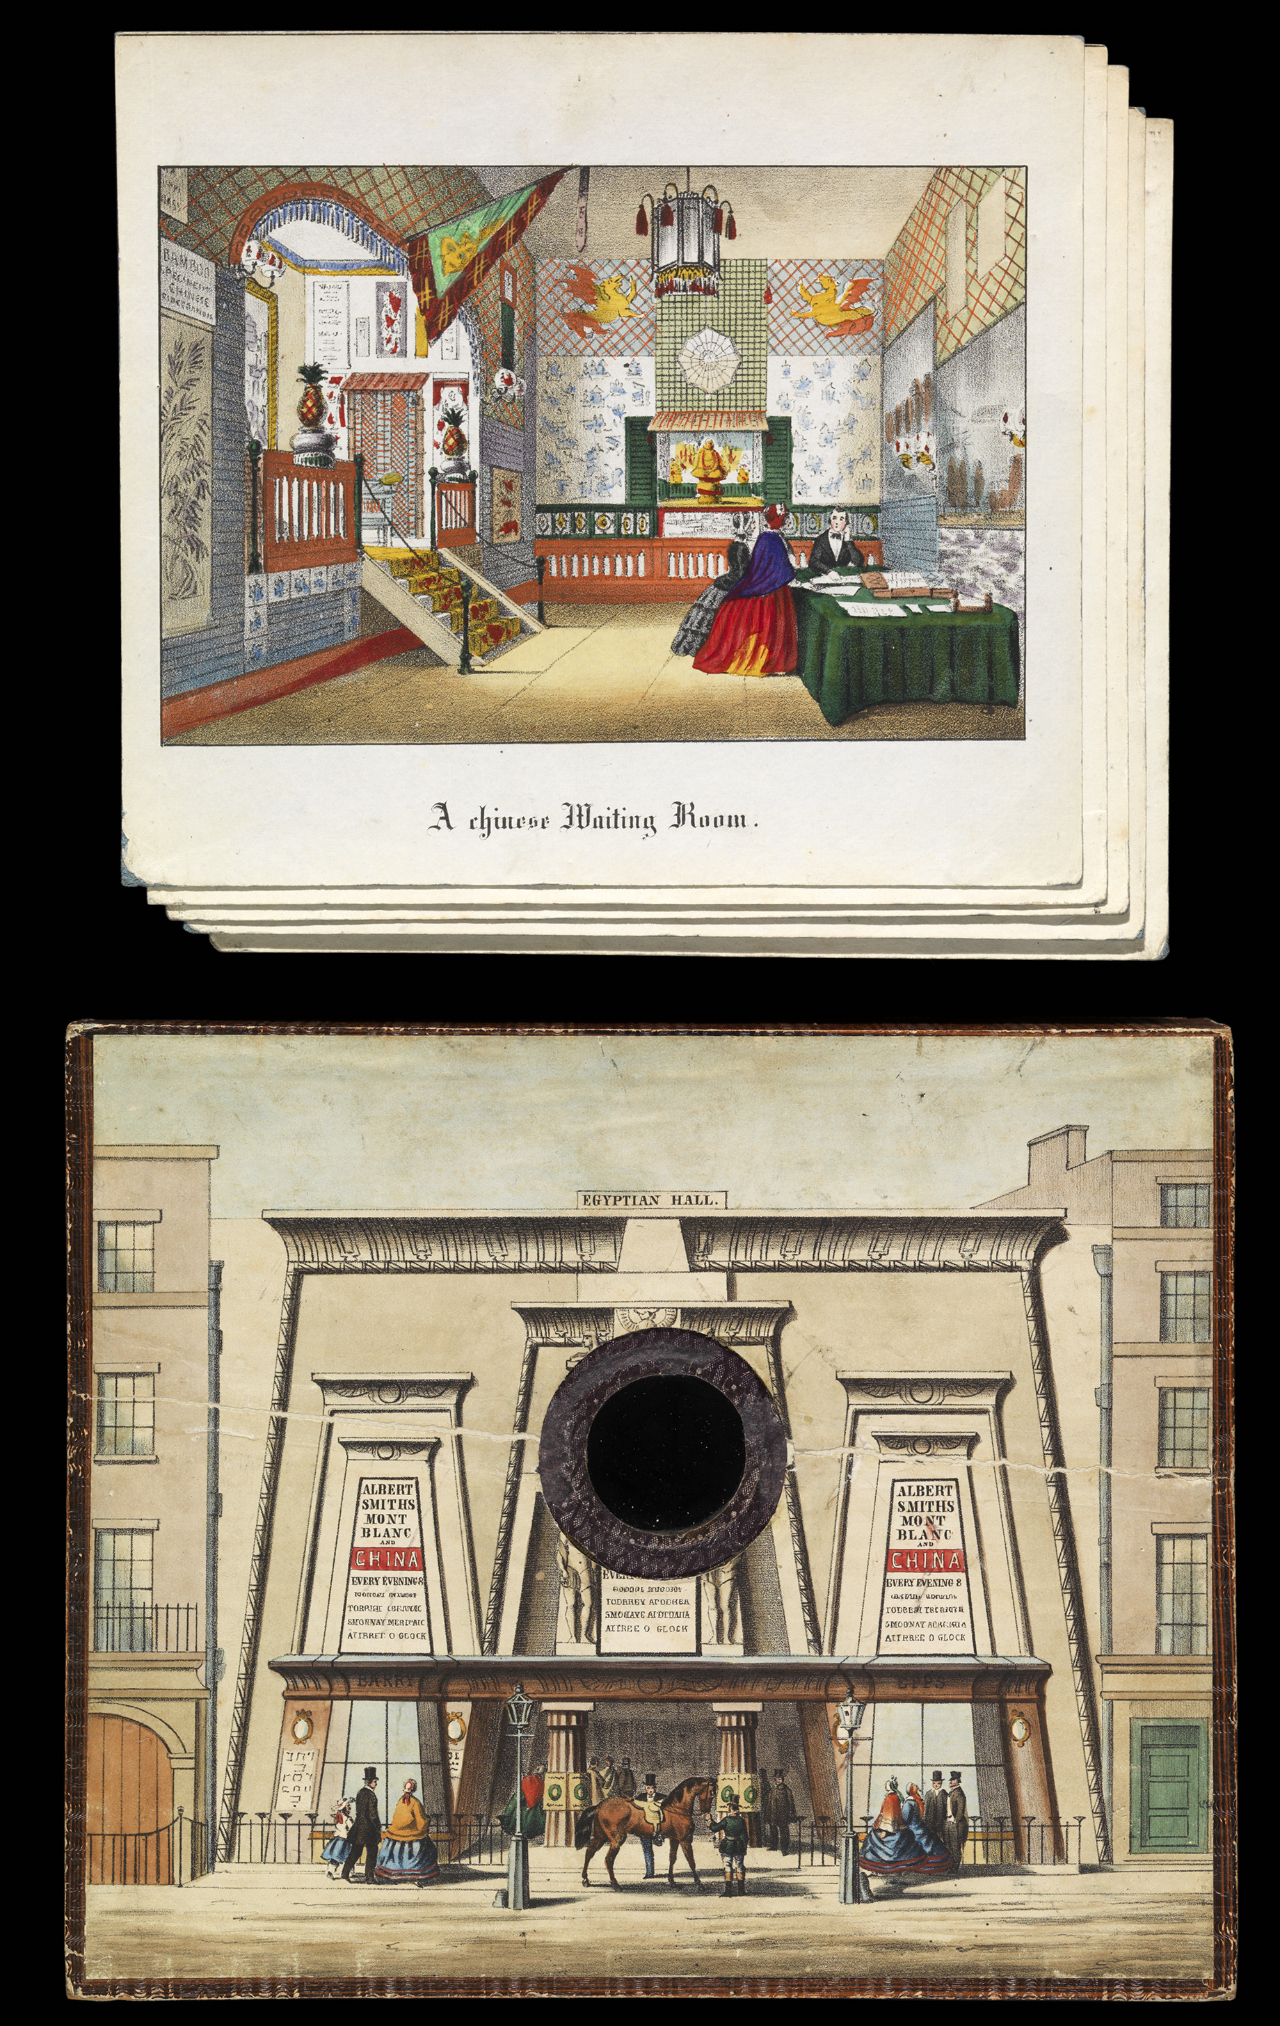 Albert Smith's miniature theater with lithographic views of Egypt and China (1859) (via Getty Research Institute)